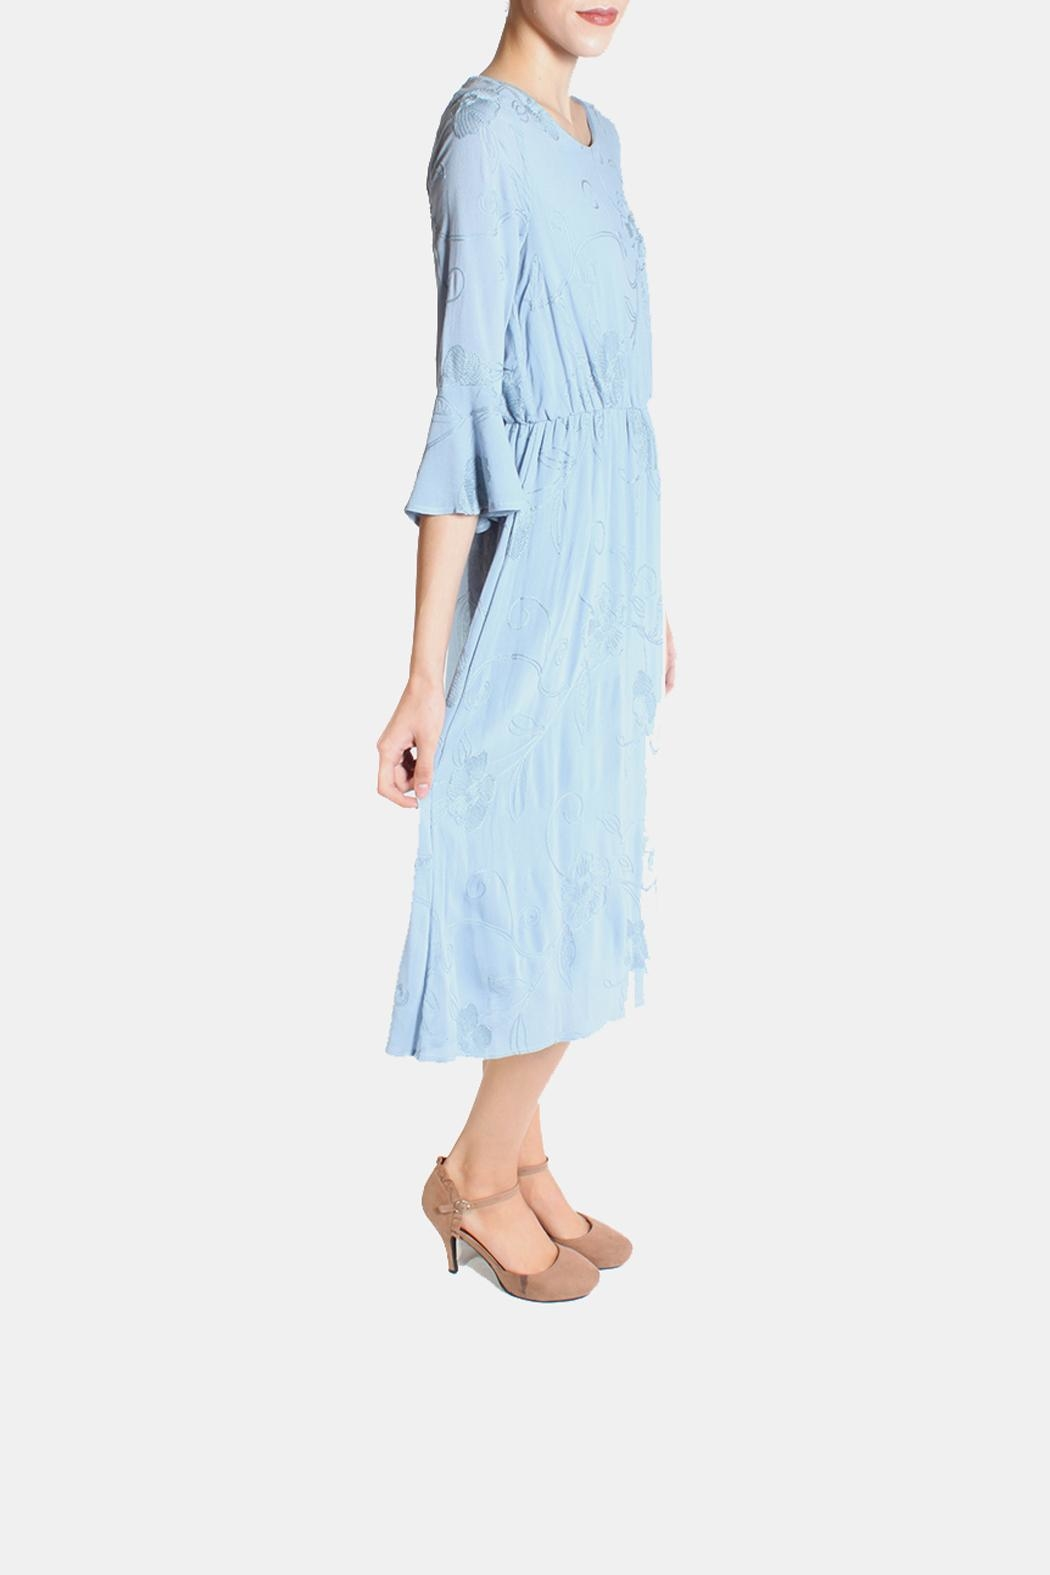 Le Lis Dreamy Blue Embroidered Dress - Side Cropped Image